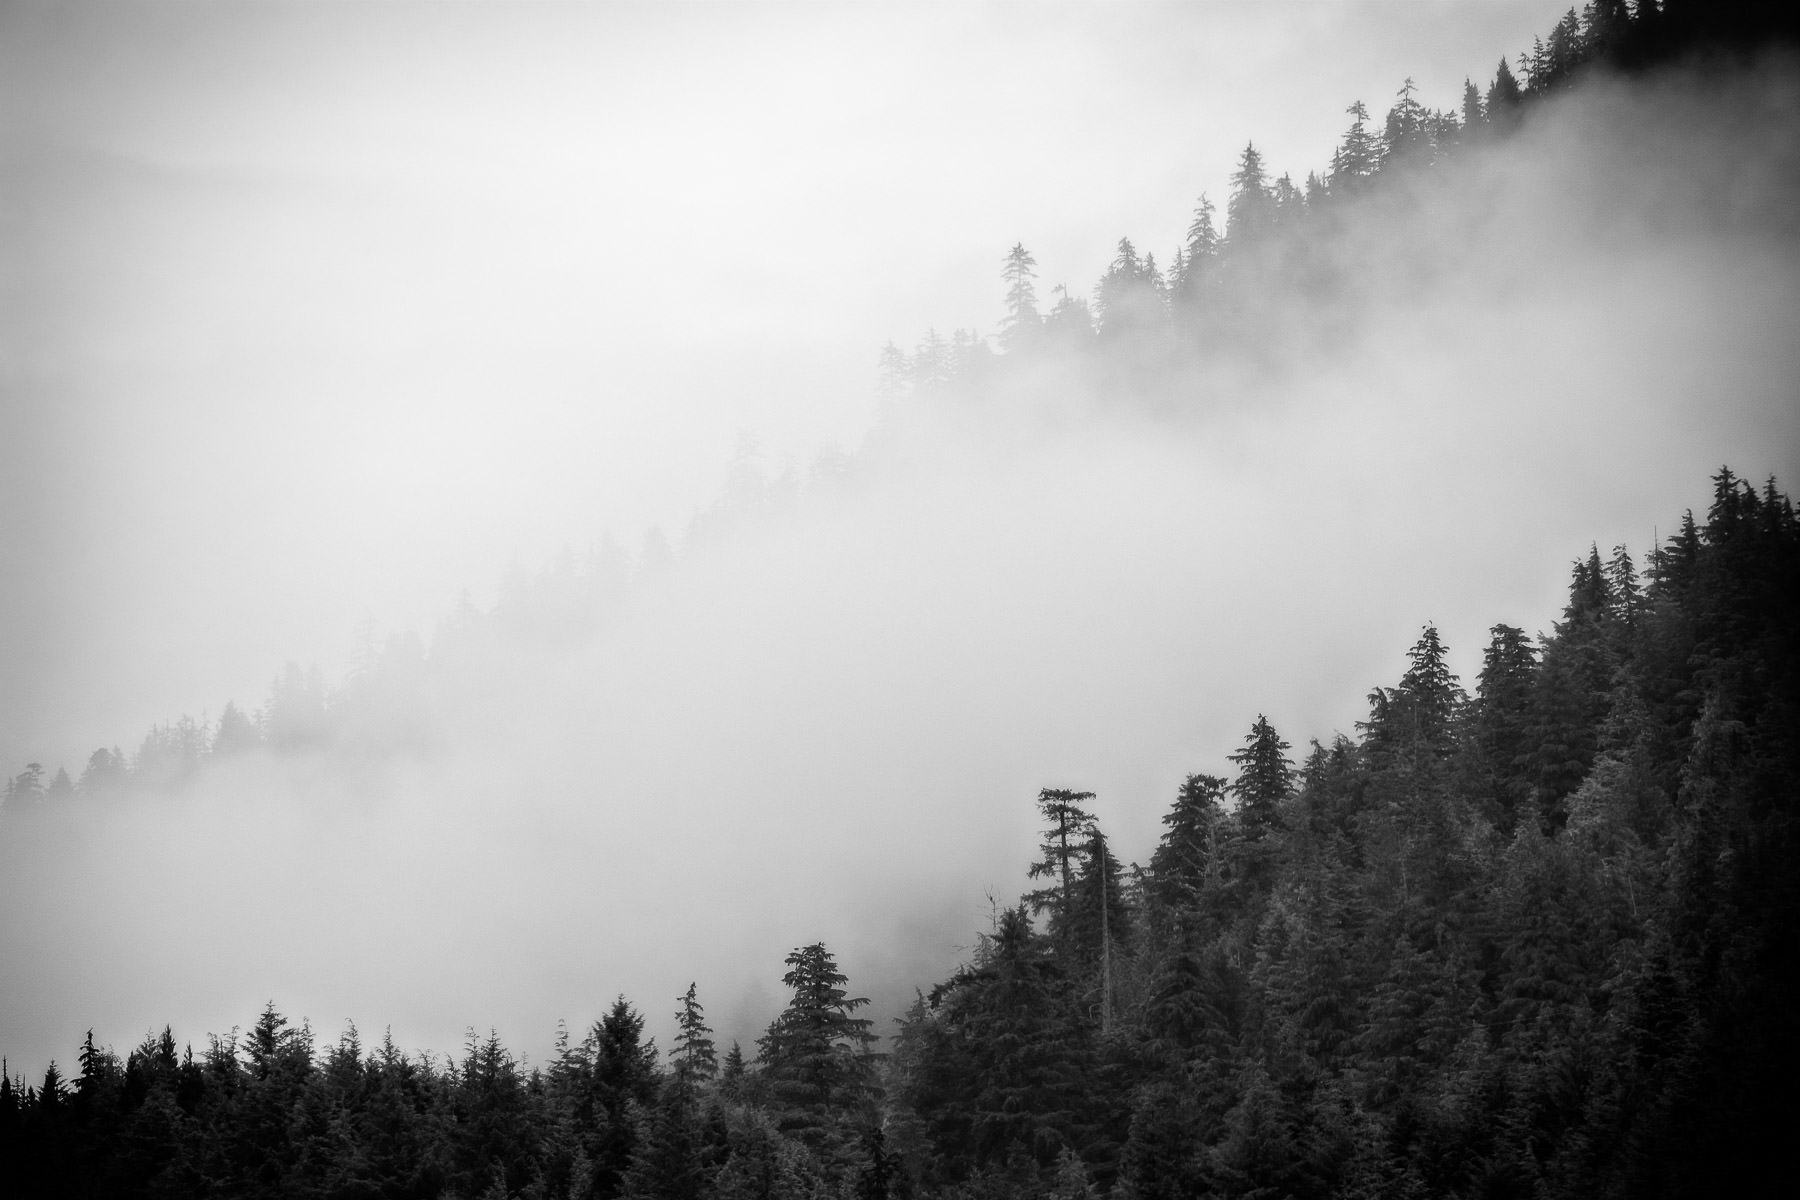 Fog rolls over the mountains of Revillagigedo Island above Ketchikan, Alaska.